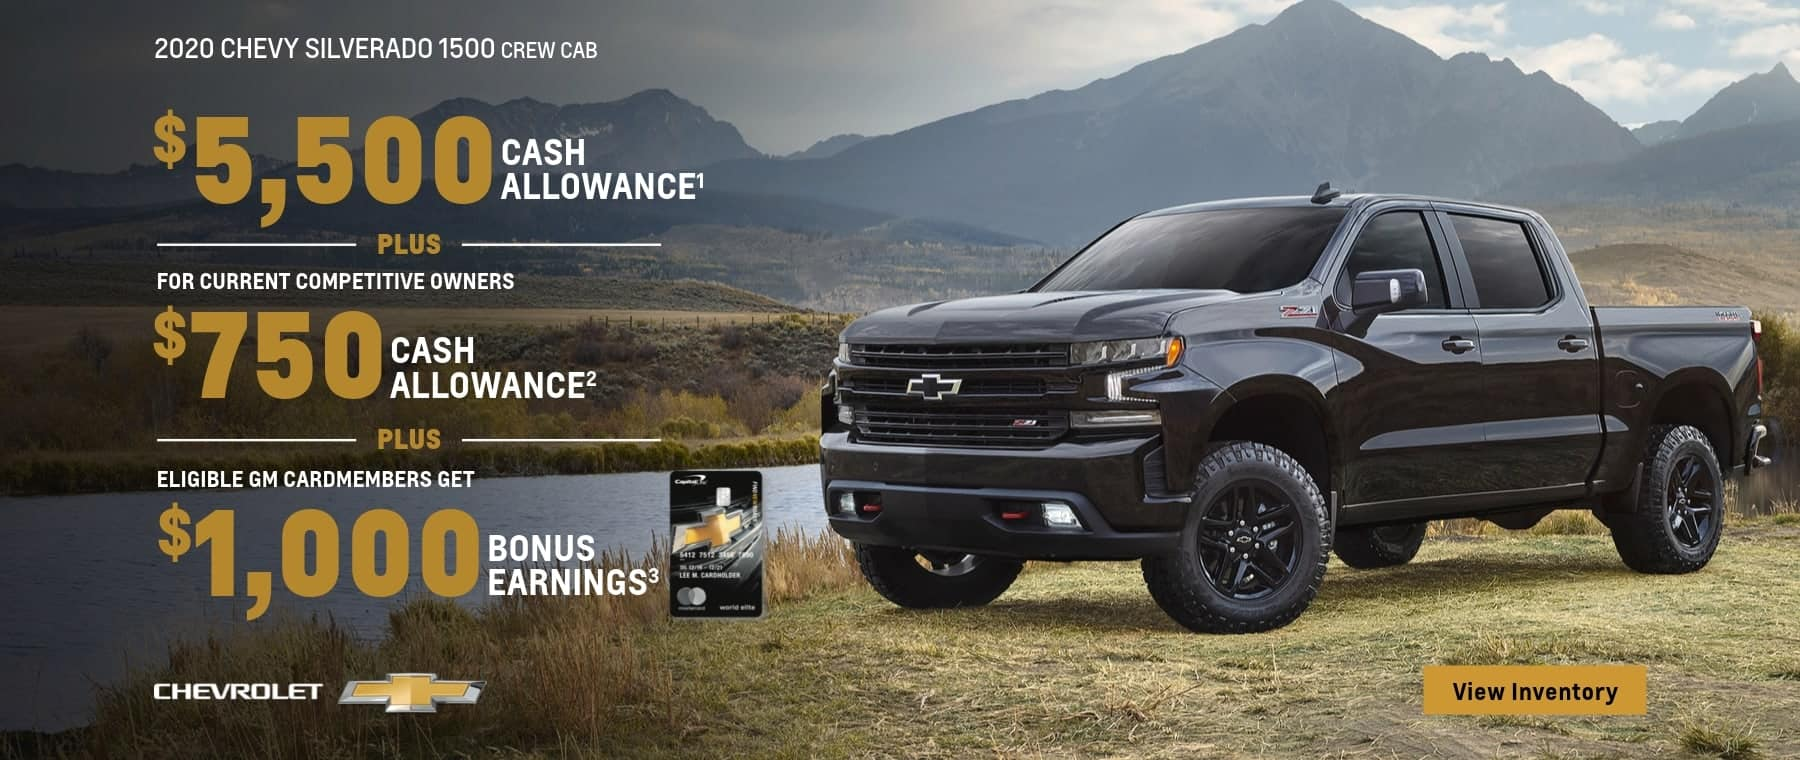 2020 Chevy Silverado 1500 Crew Cab $5,500 Cash Allowance plus for current competitive owners $750 Cash Allowance plus eligible GM Cardmembers get $1,000 GM card bonus earnings.